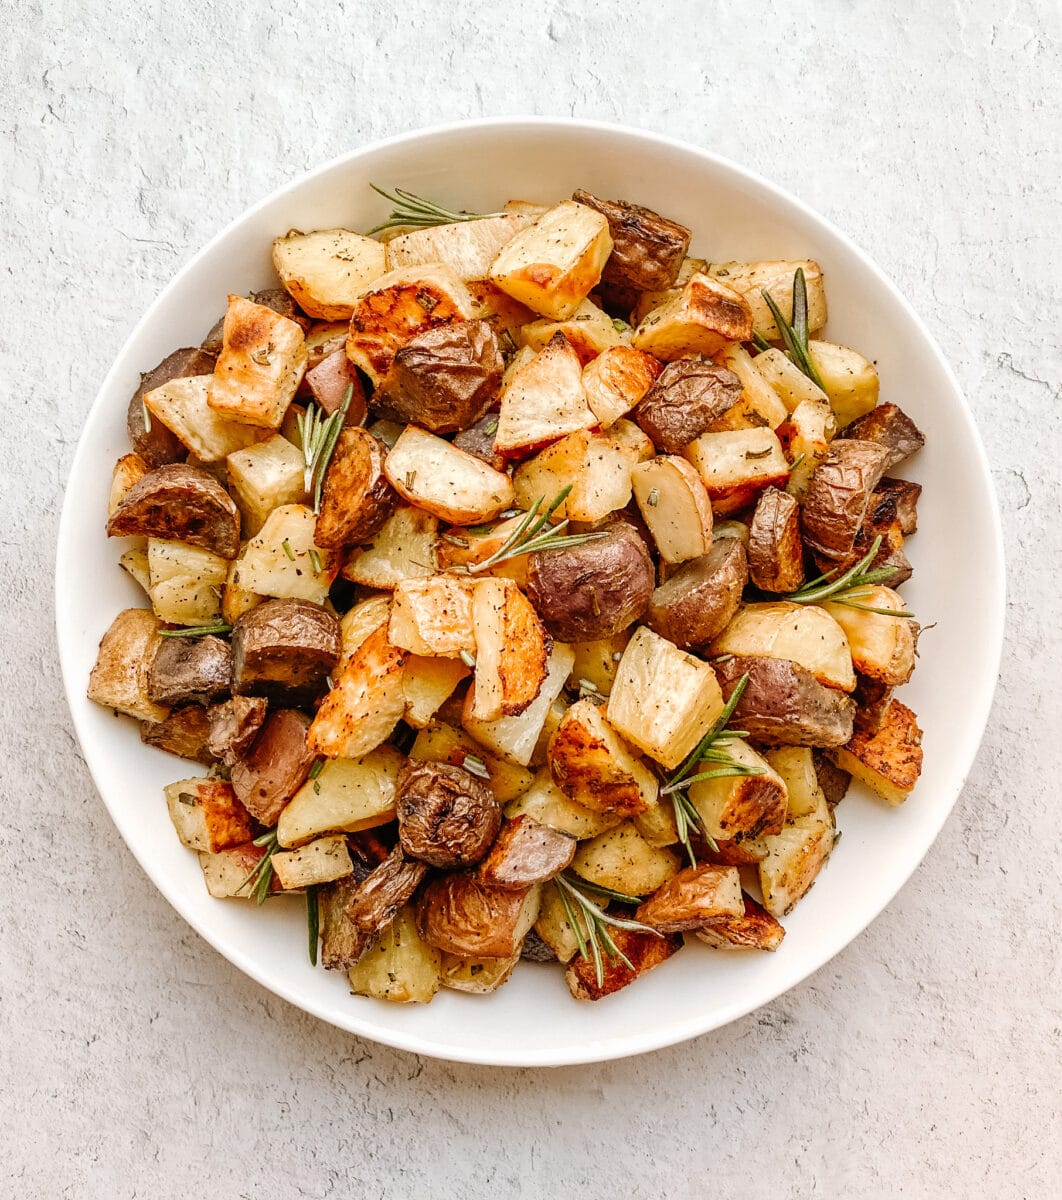 gluten free potatoes in a bowl taken from an aerial view with sprigs of rosemary throughout